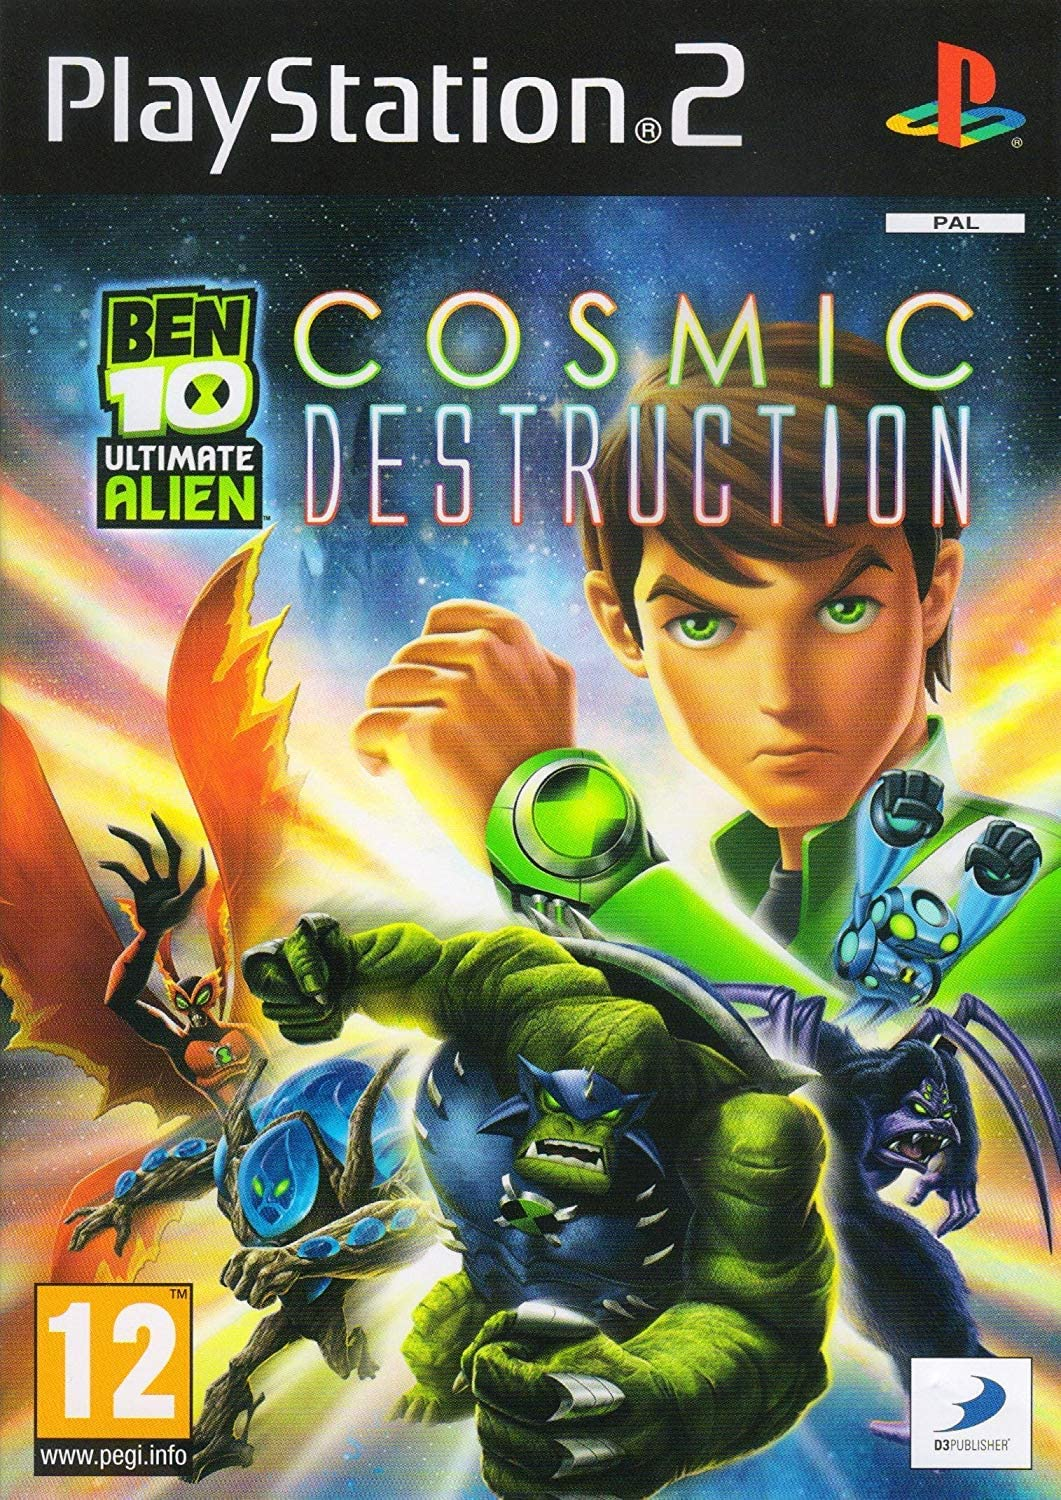 Ben 10 Ultimate Alien: Cosmic Destruction (PS2): Amazon.co.uk: PC & Video  Games